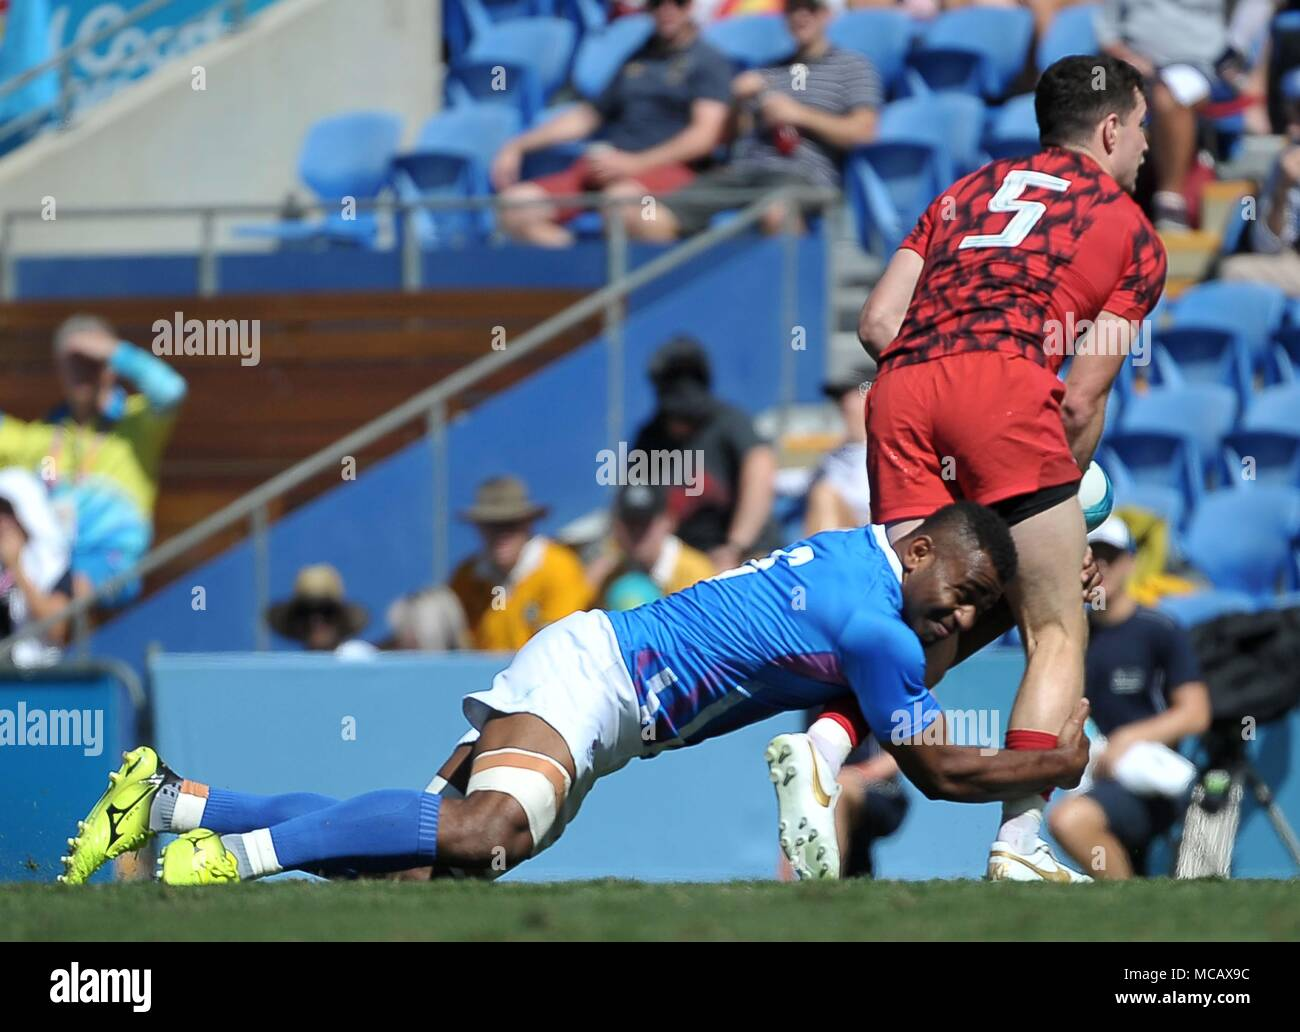 Rugby Tackles Stock Photos & Rugby Tackles Stock Images - Alamy